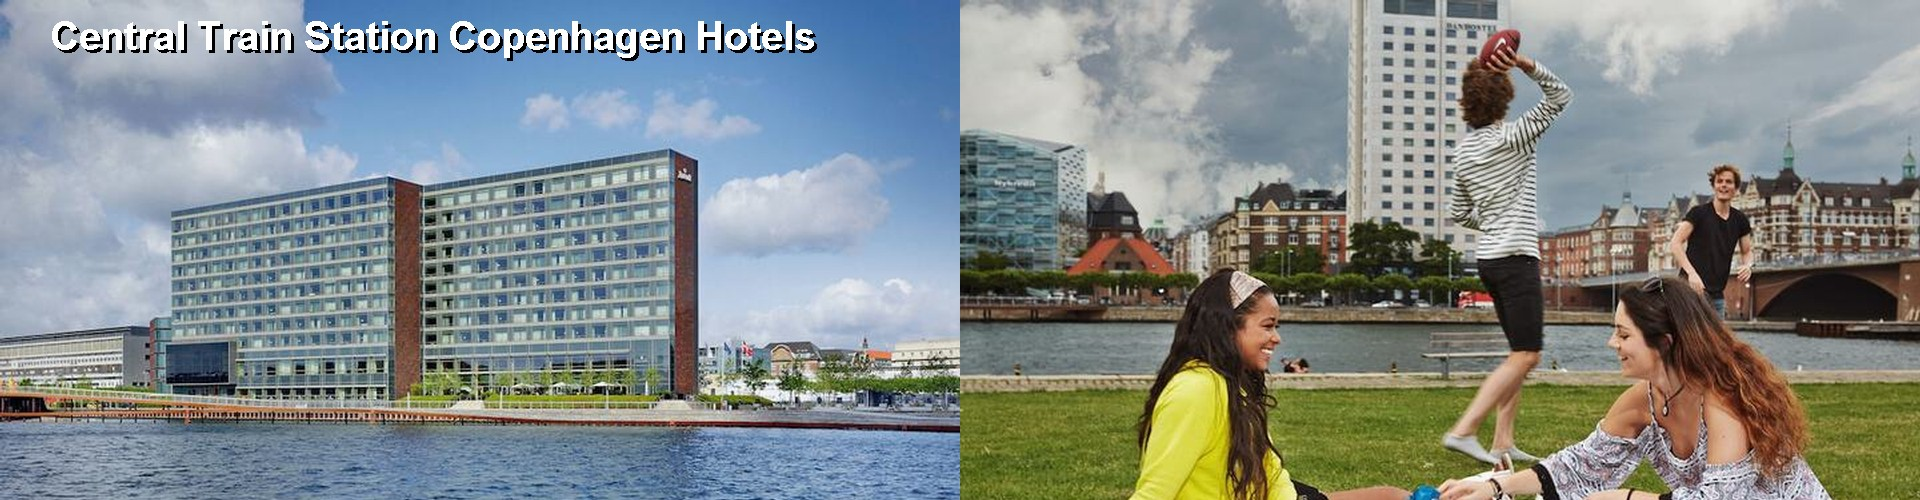 5 Best Hotels near Central Train Station Copenhagen